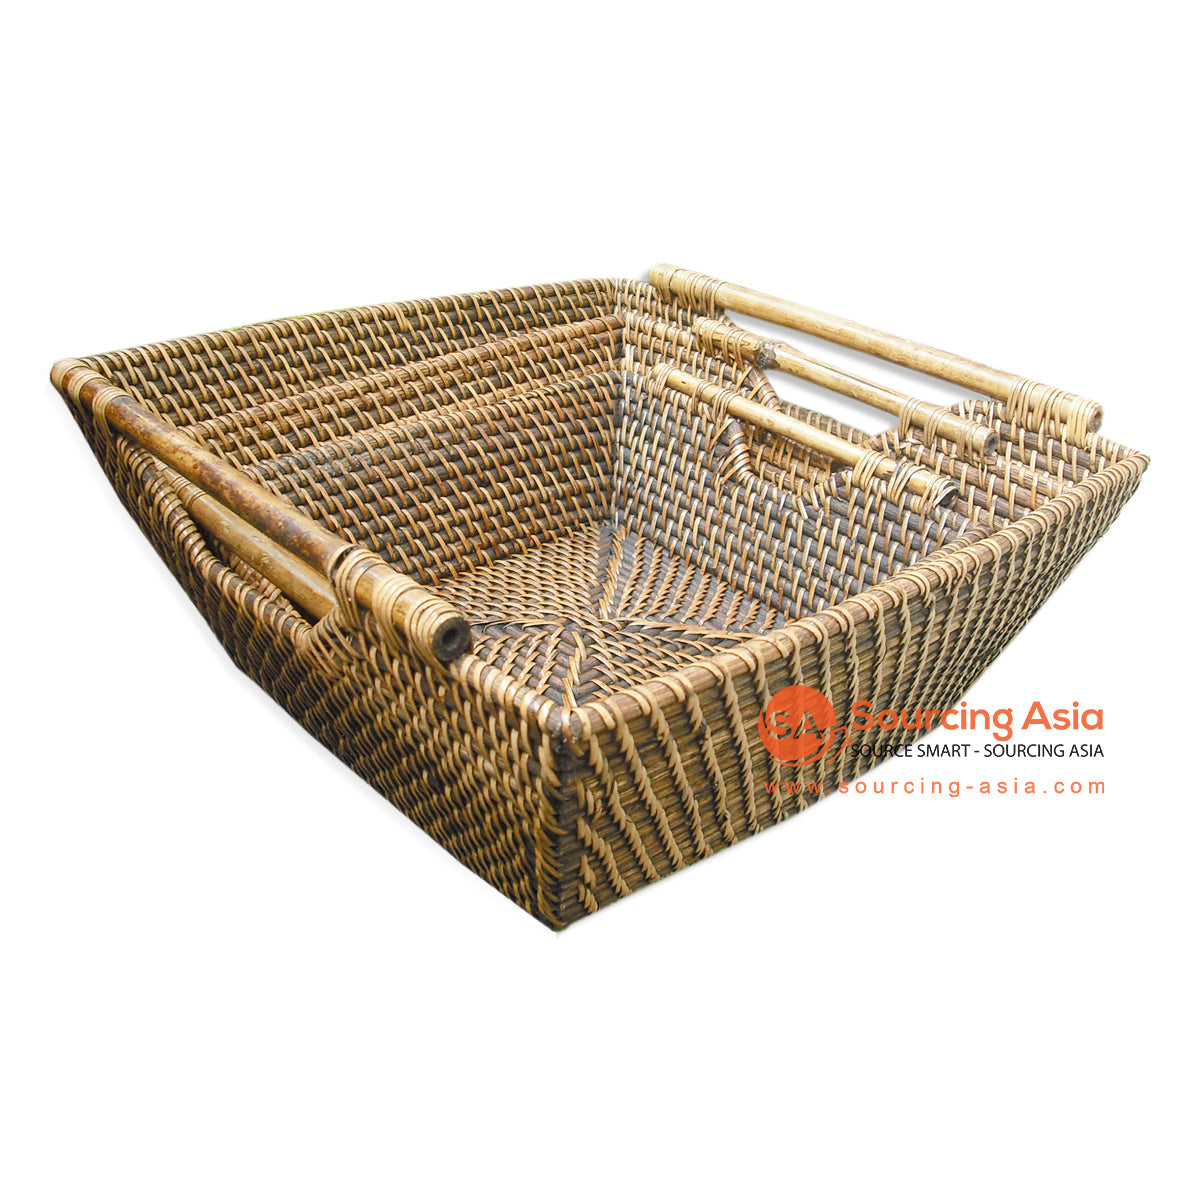 PPN071 SET OF 3 RATTAN TRAY